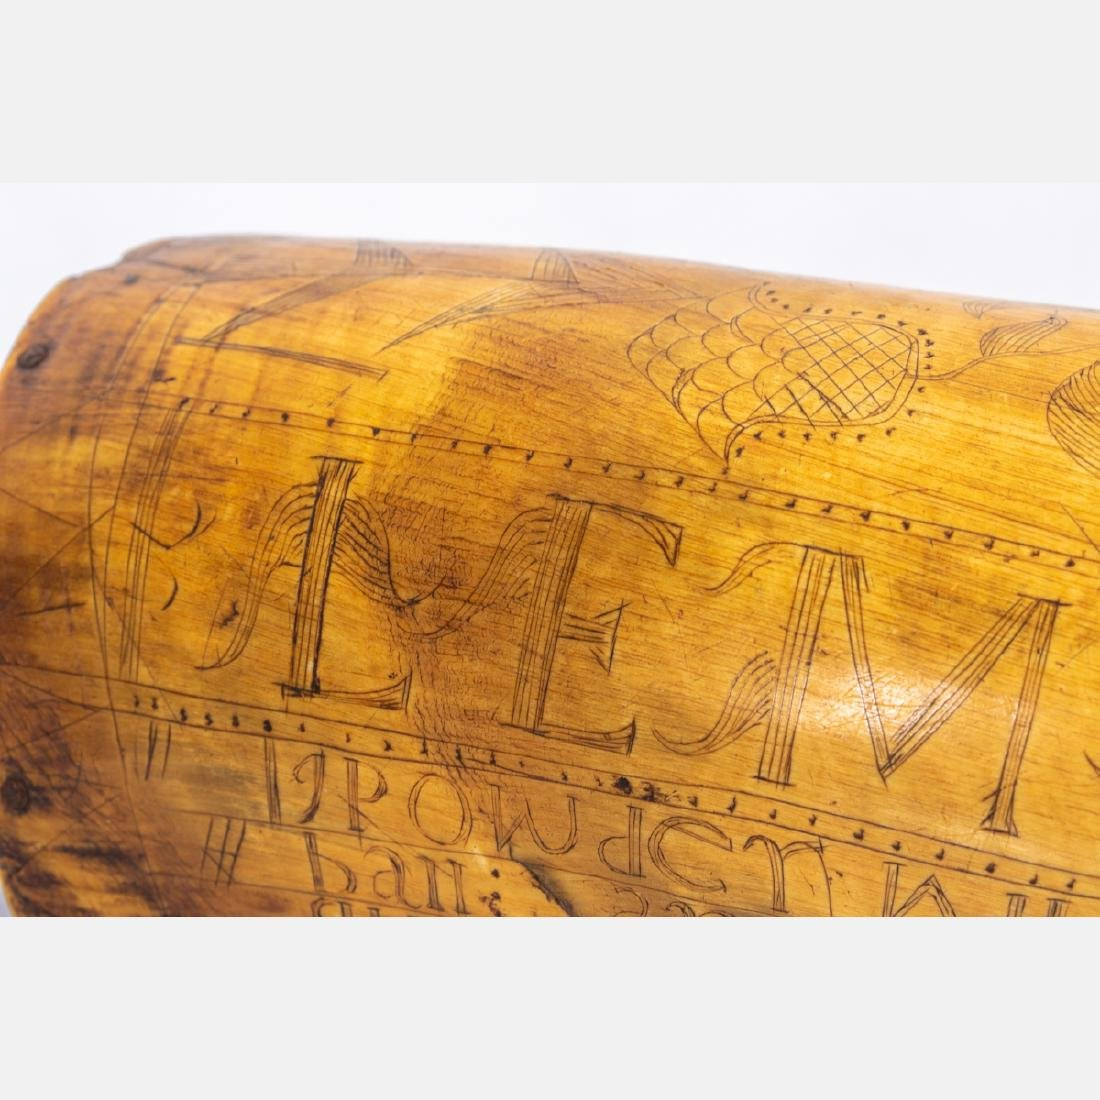 An Engraved French and Indian War Period Powder Horn, - 6